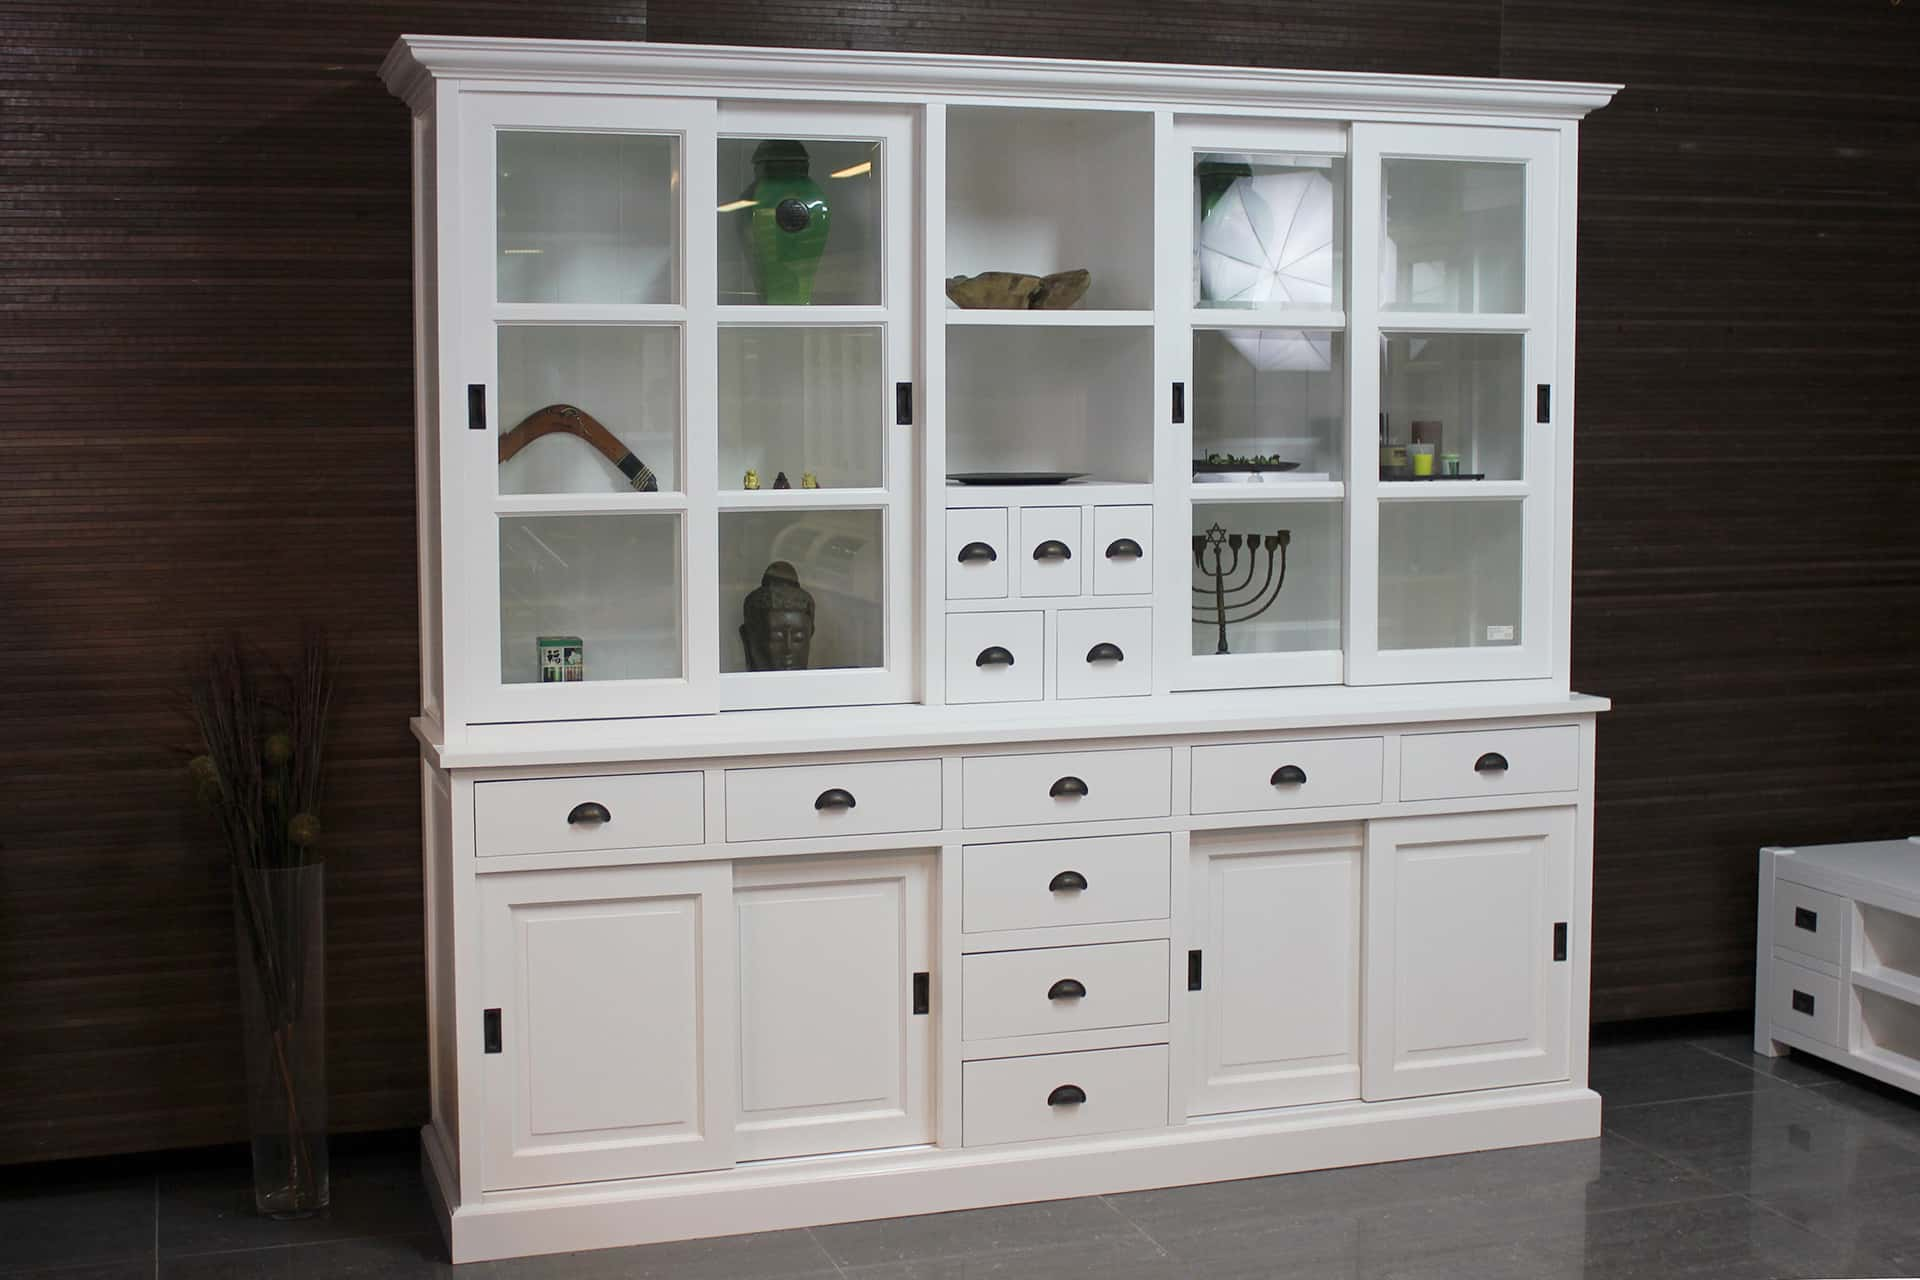 Kedal 250L SW | large modern white store cabinet - luxurious spacious buffet cabinet in traffic white RAL 9016. Exclusive cupboard, large authentic display cabinets in white - TEAK2.